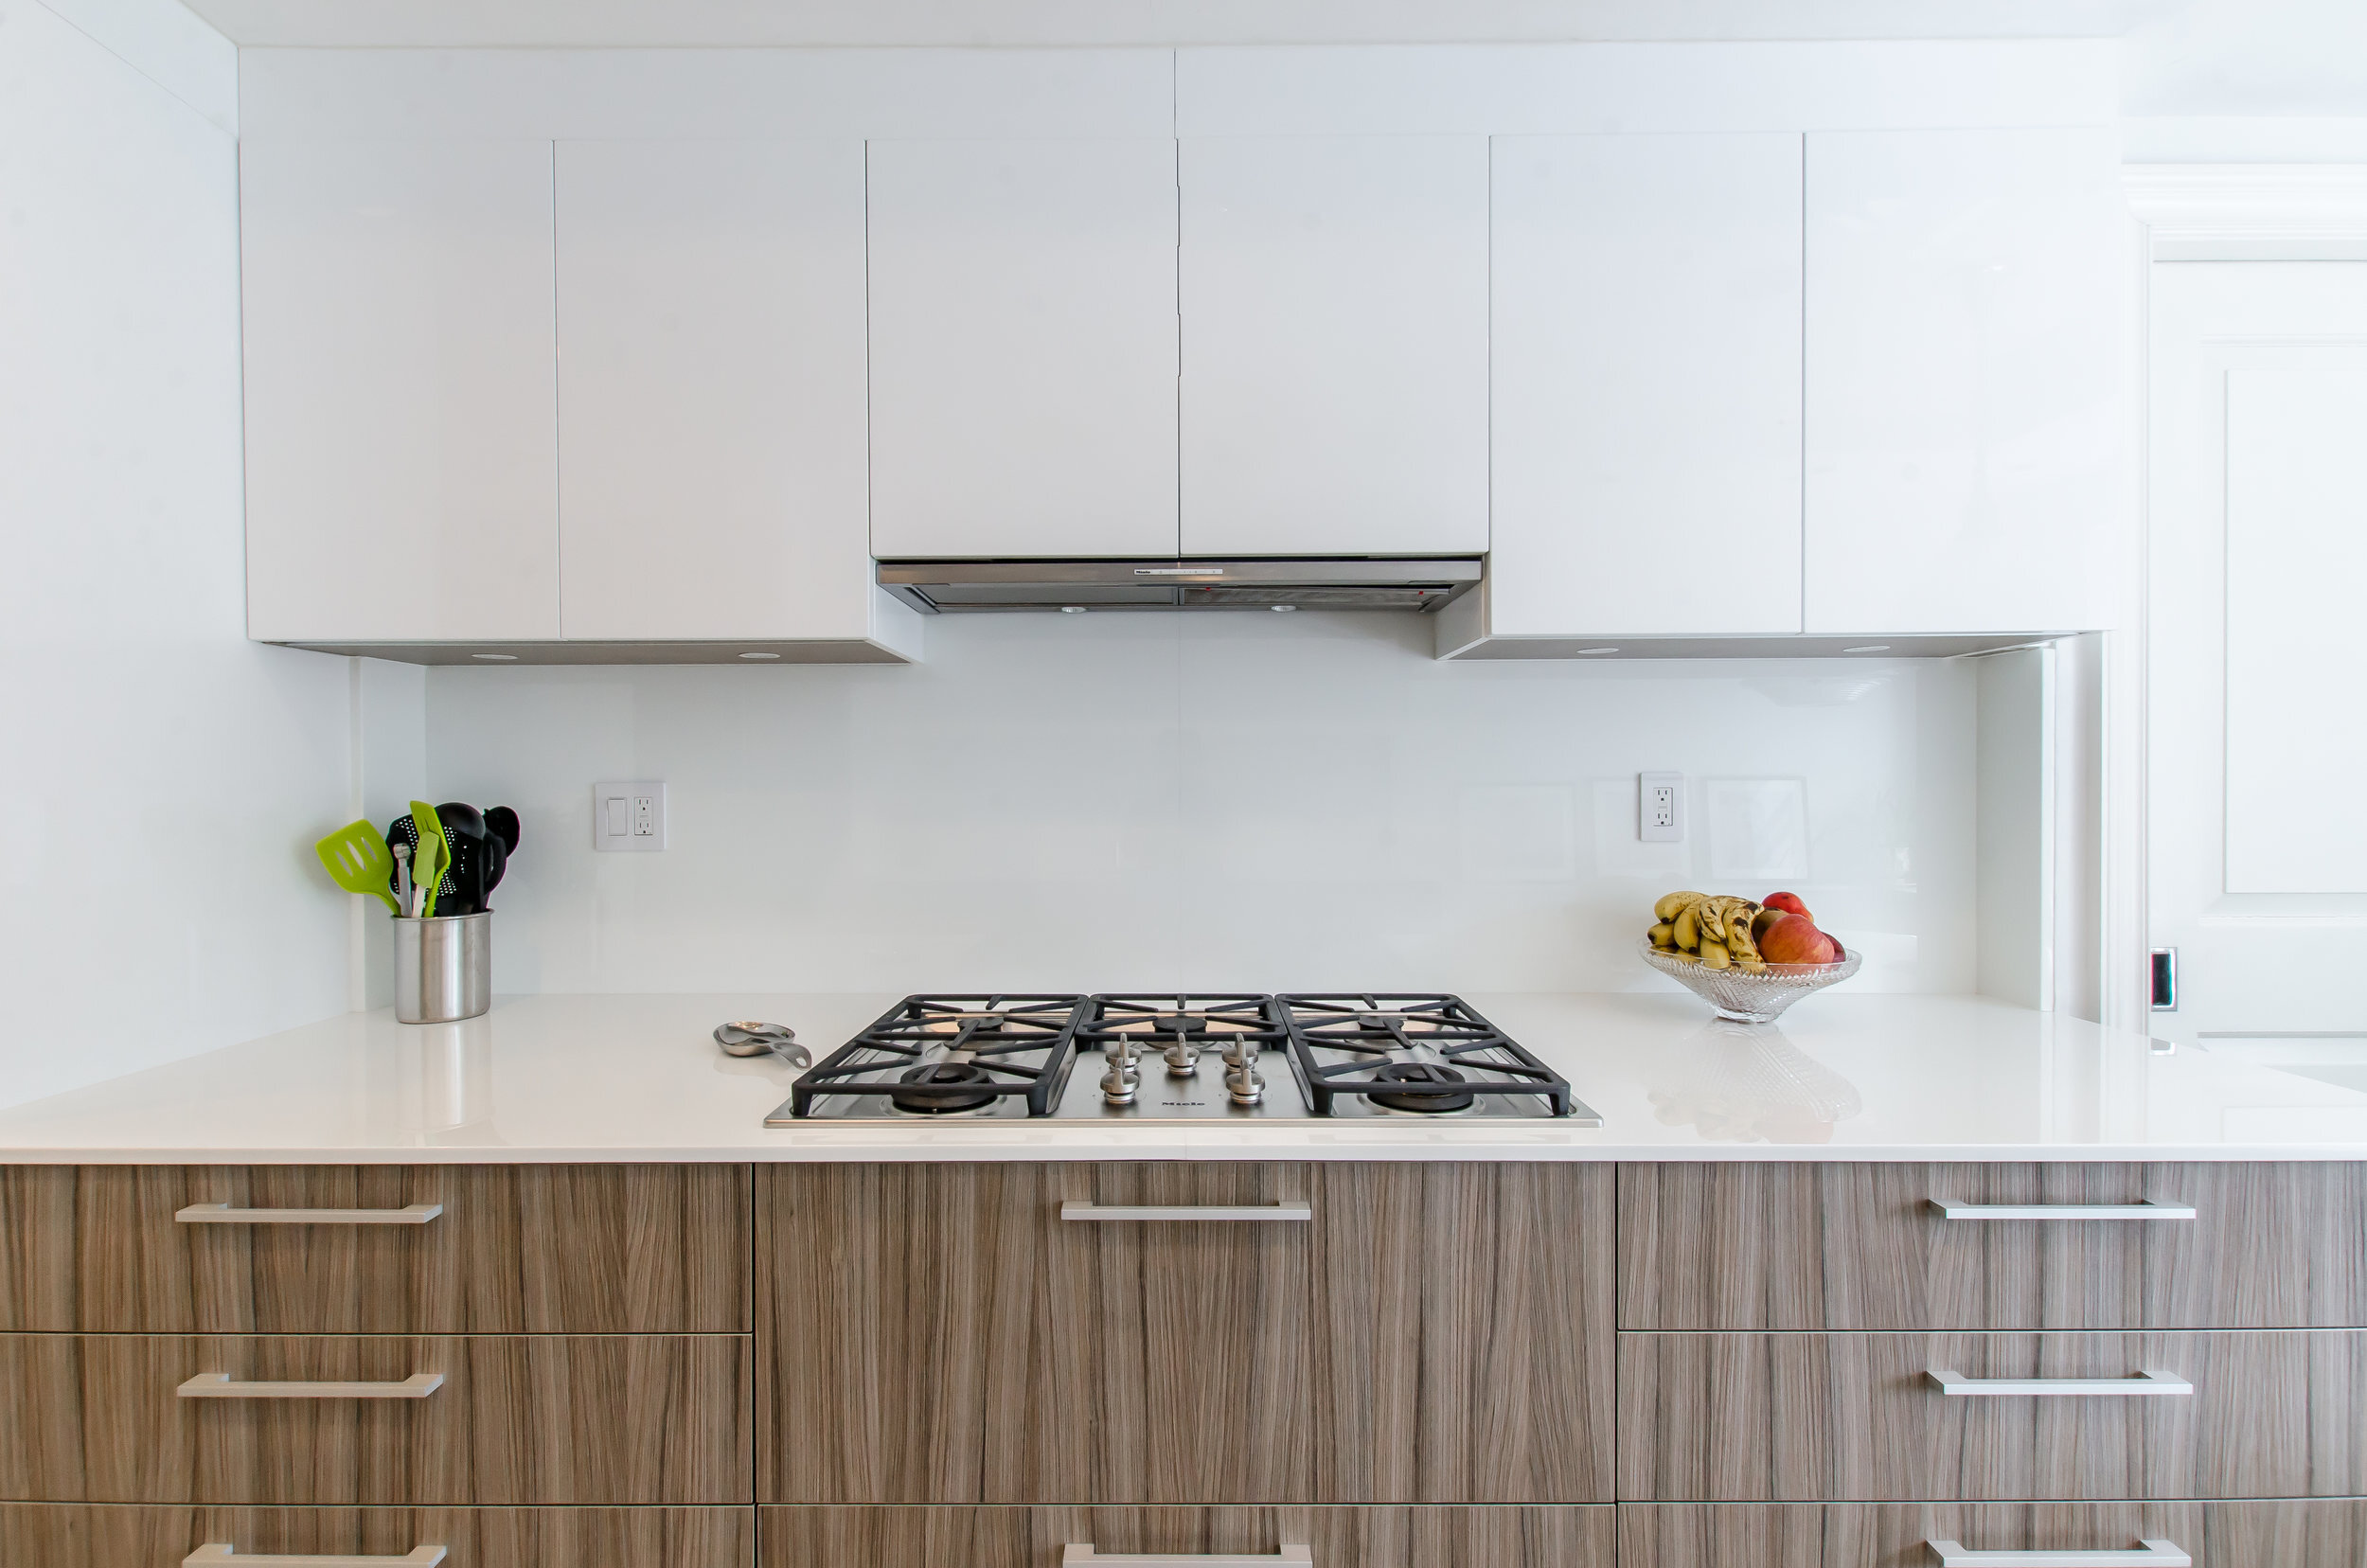 residential-projects-ParkAve-residence1-comp2.jpg